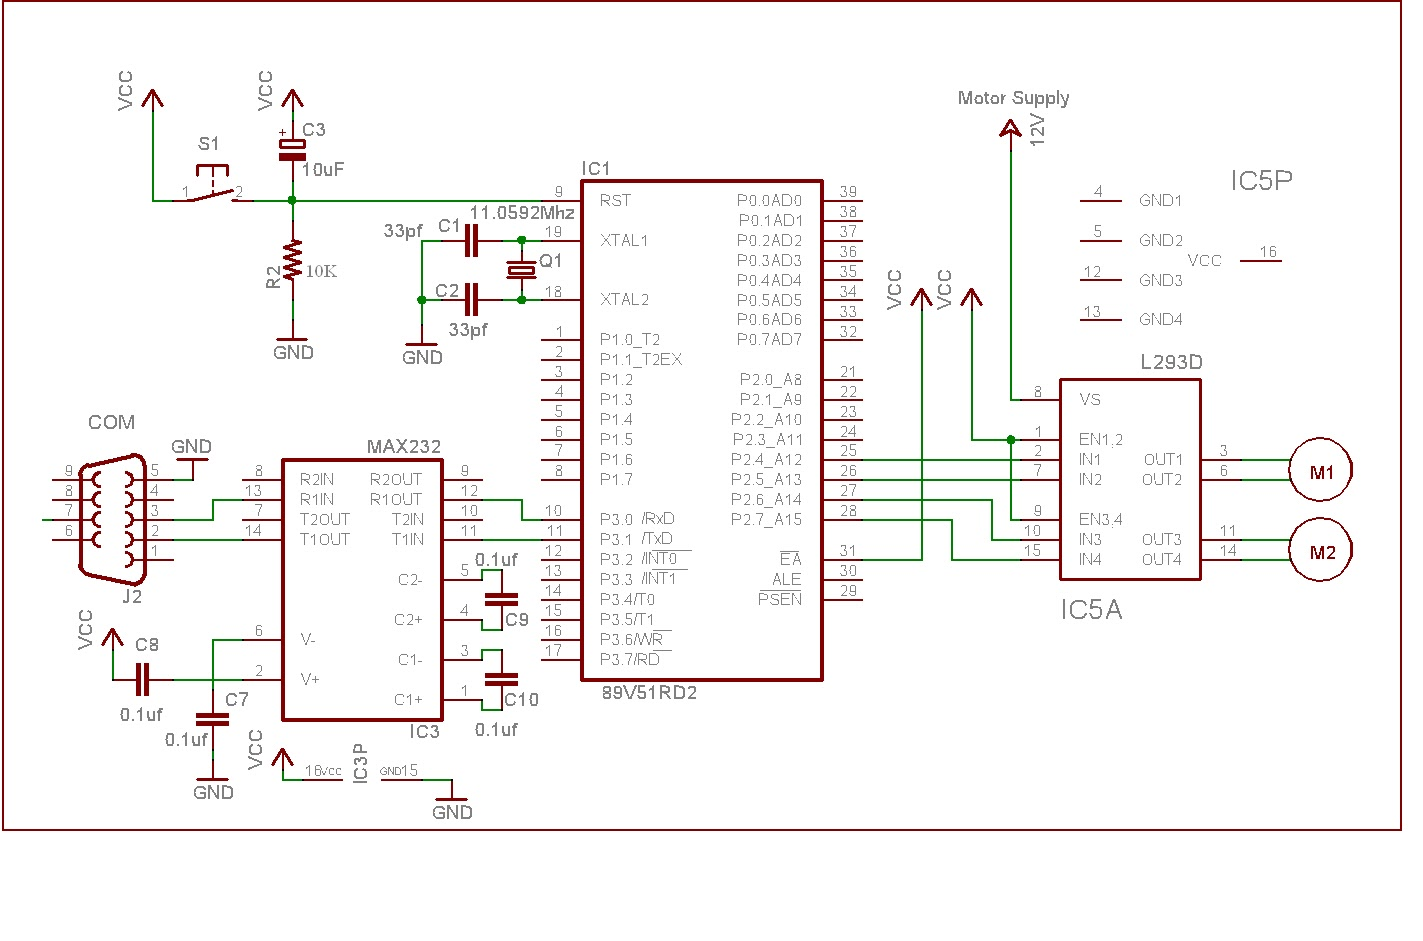 SOLVED] wants to control dc motor through l293d on